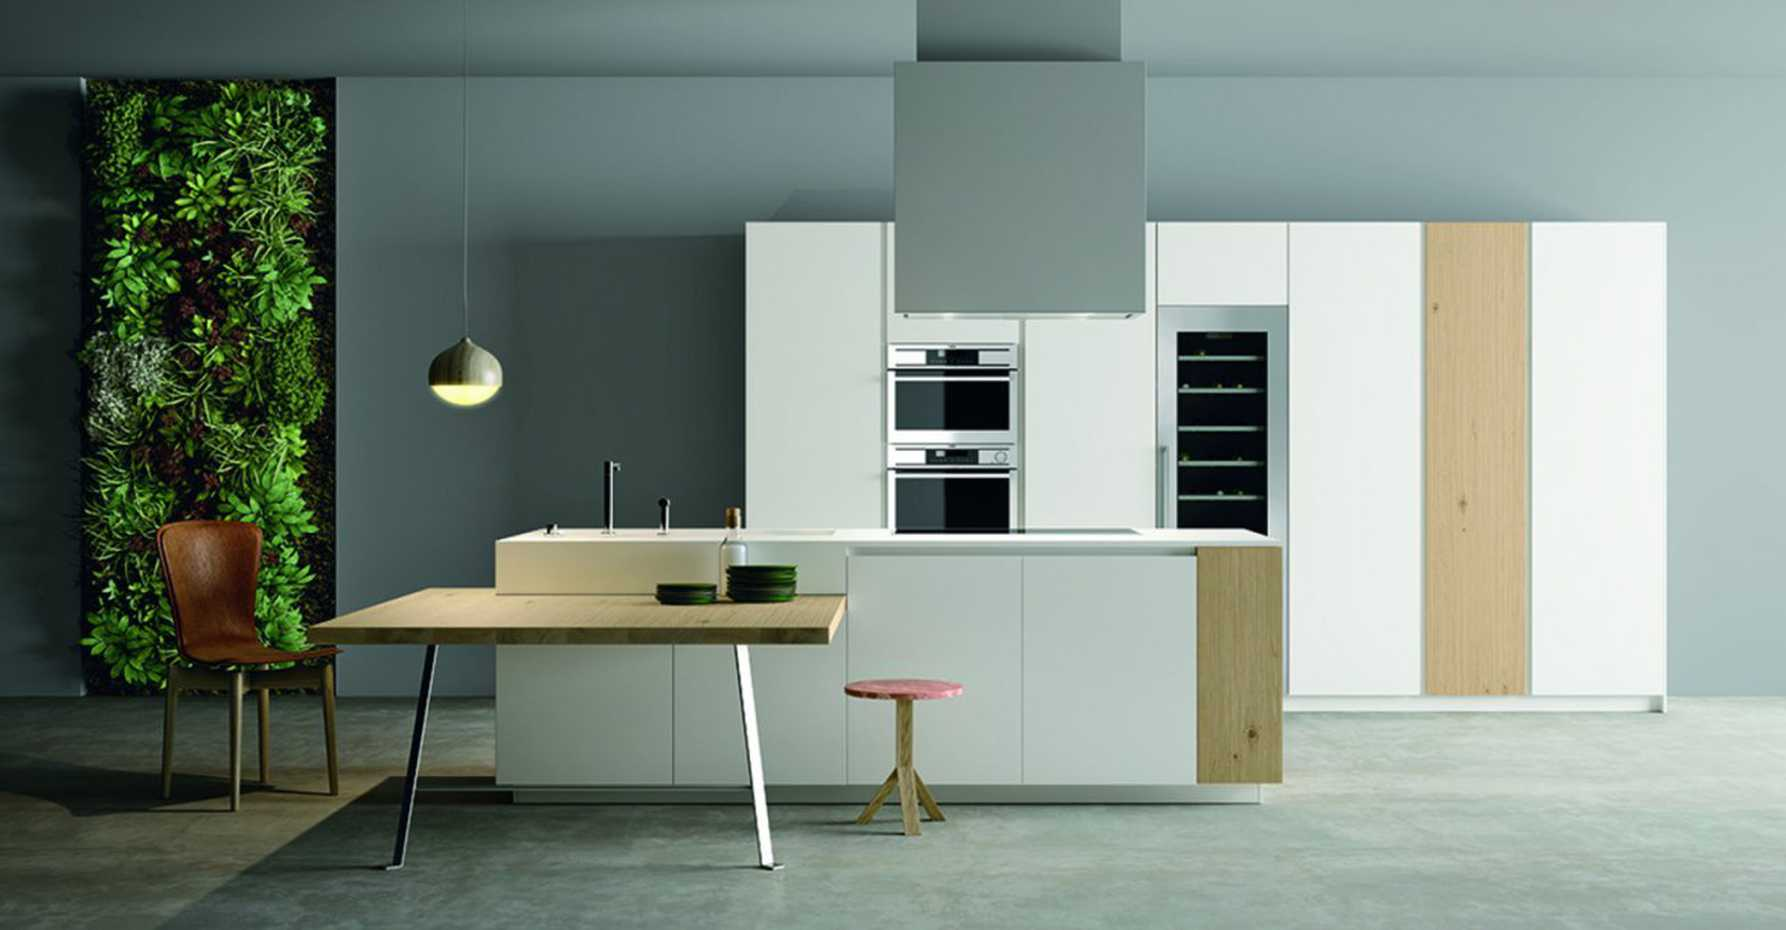 Materia by Doimo Cucine product image 8